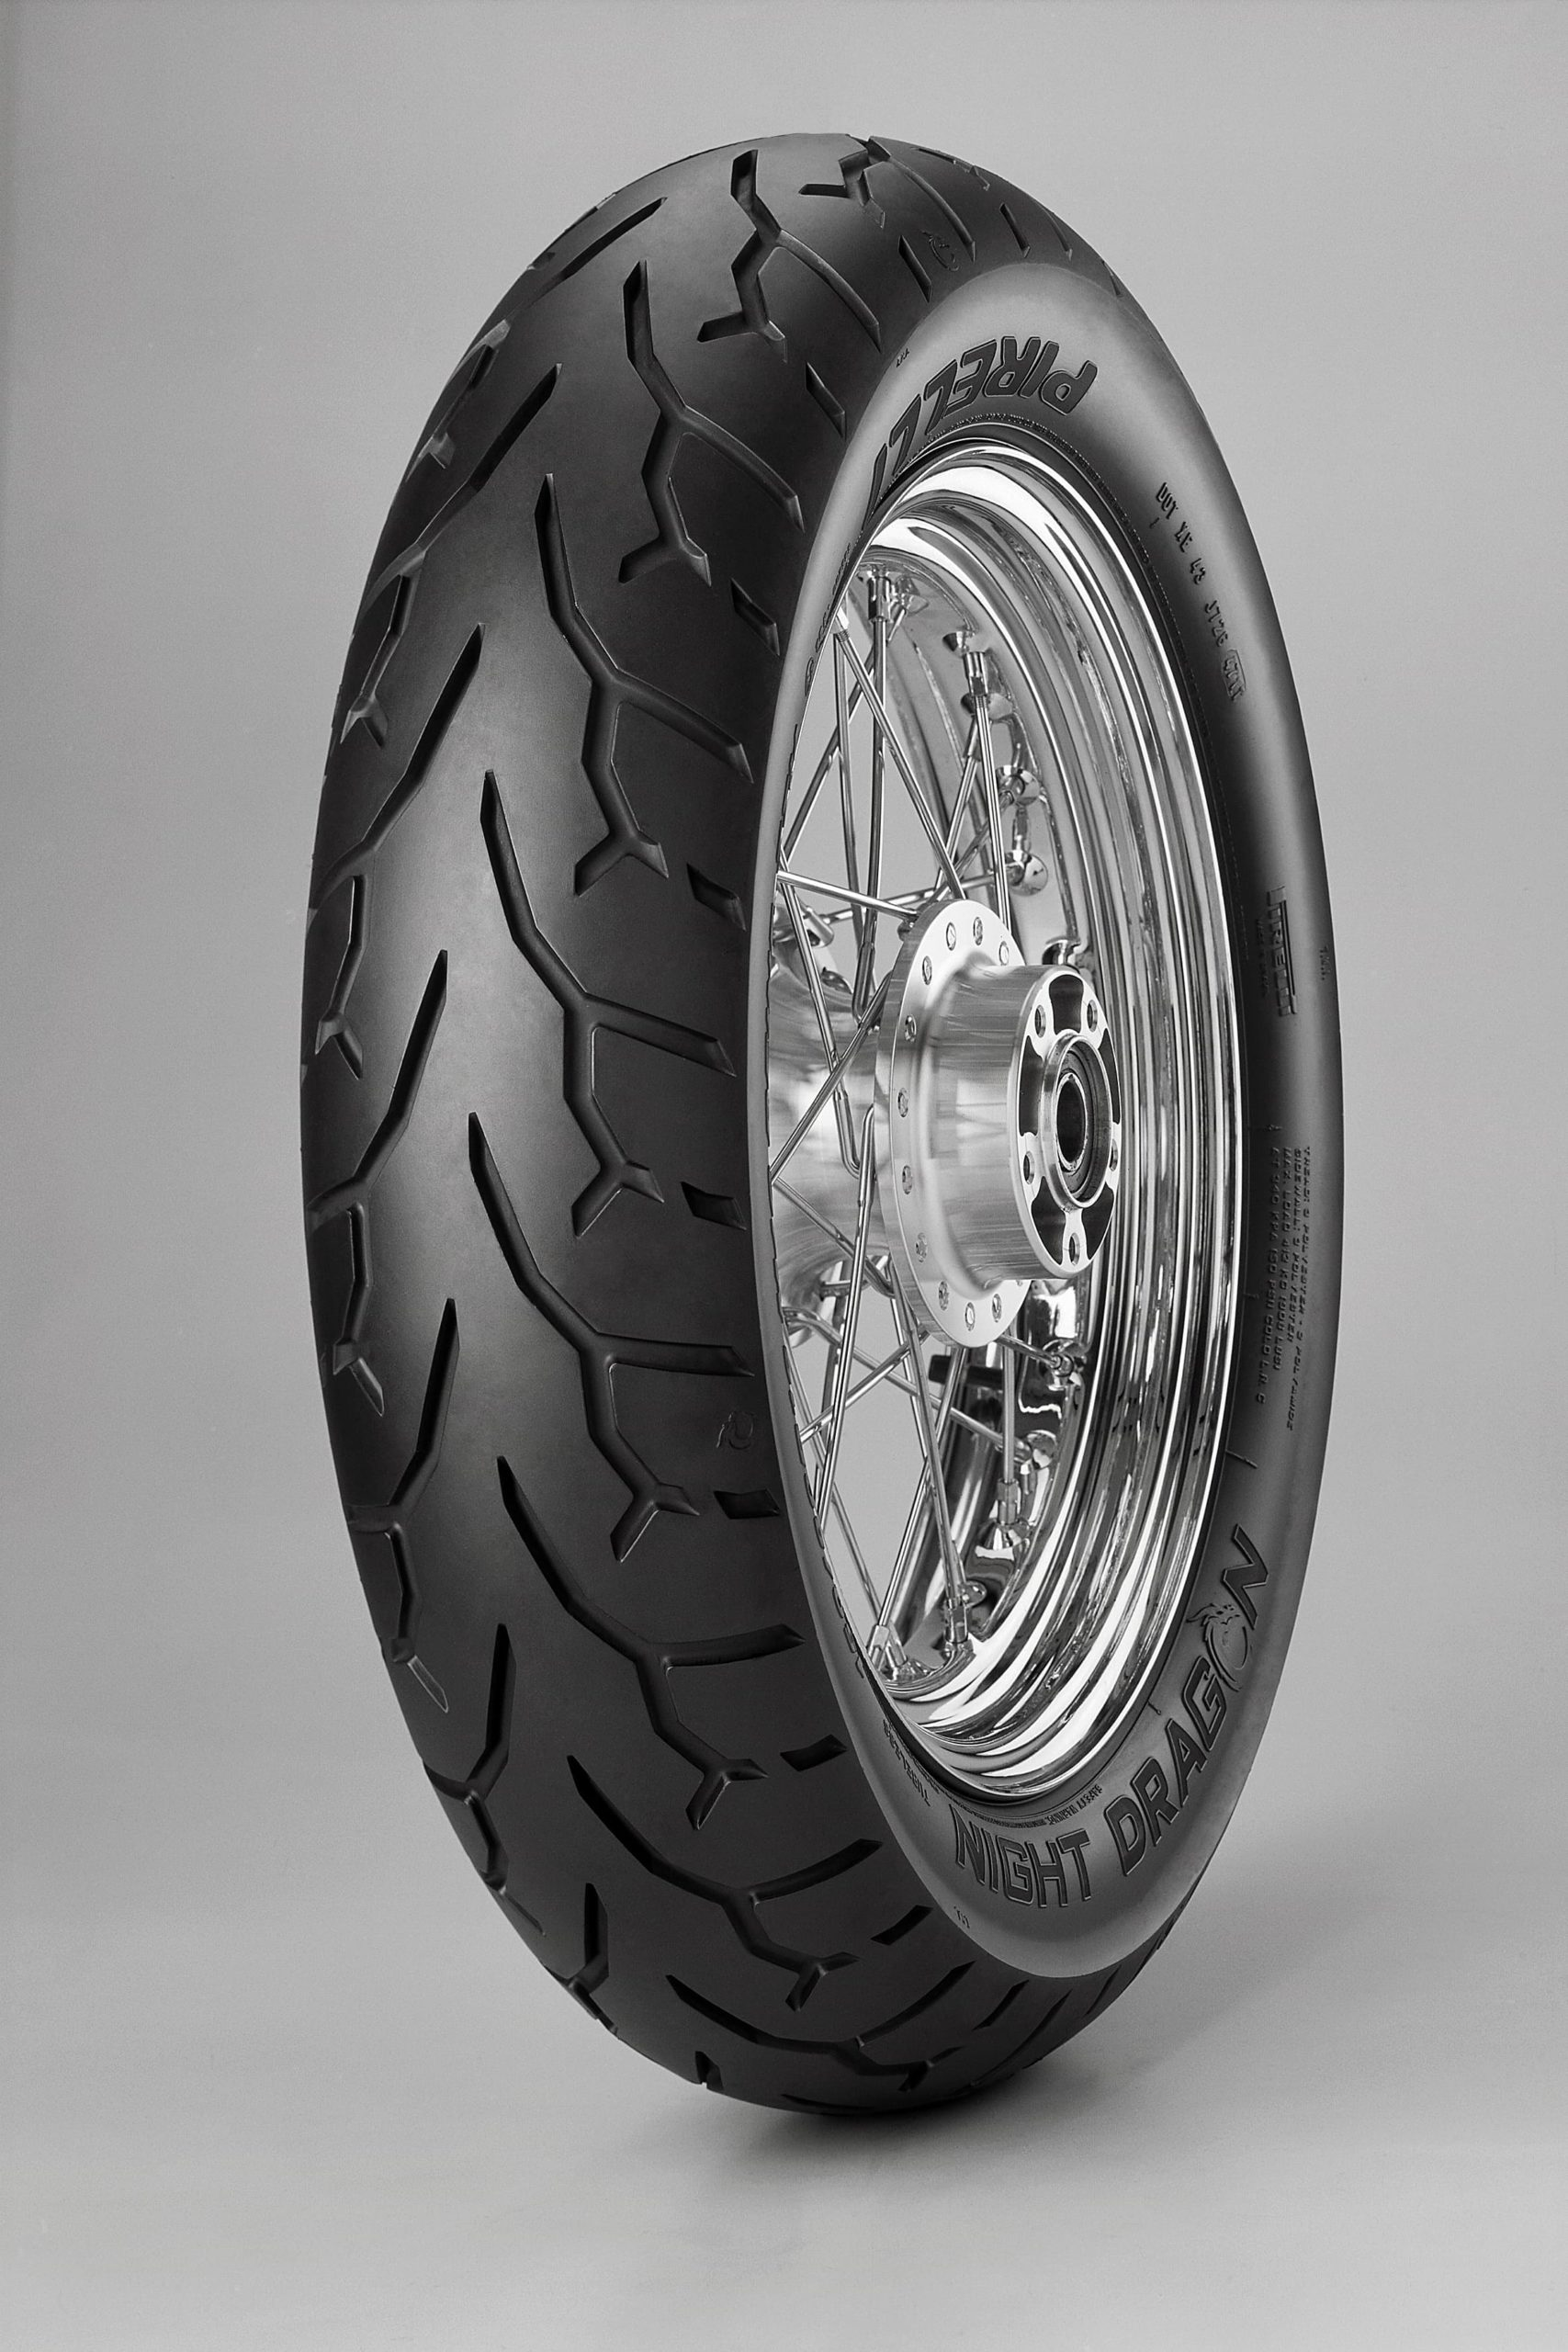 Anvelopa 140/75 R 17 M/C 67V TL NIGHT DRAGON 67V TL PIRELLI